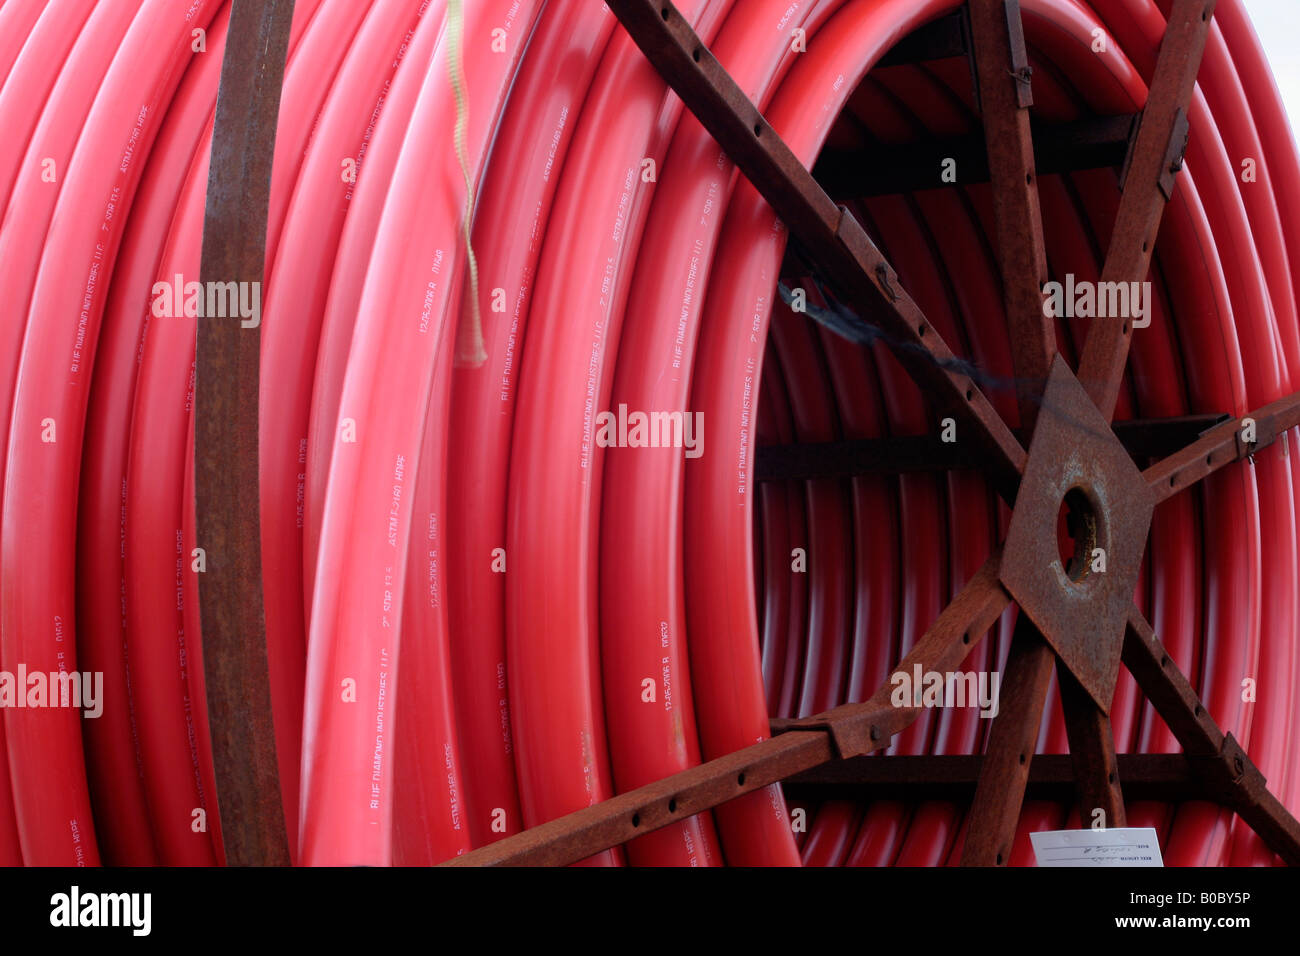 2 inch plastic pipe & 2 inch plastic pipe Stock Photo: 17473170 - Alamy